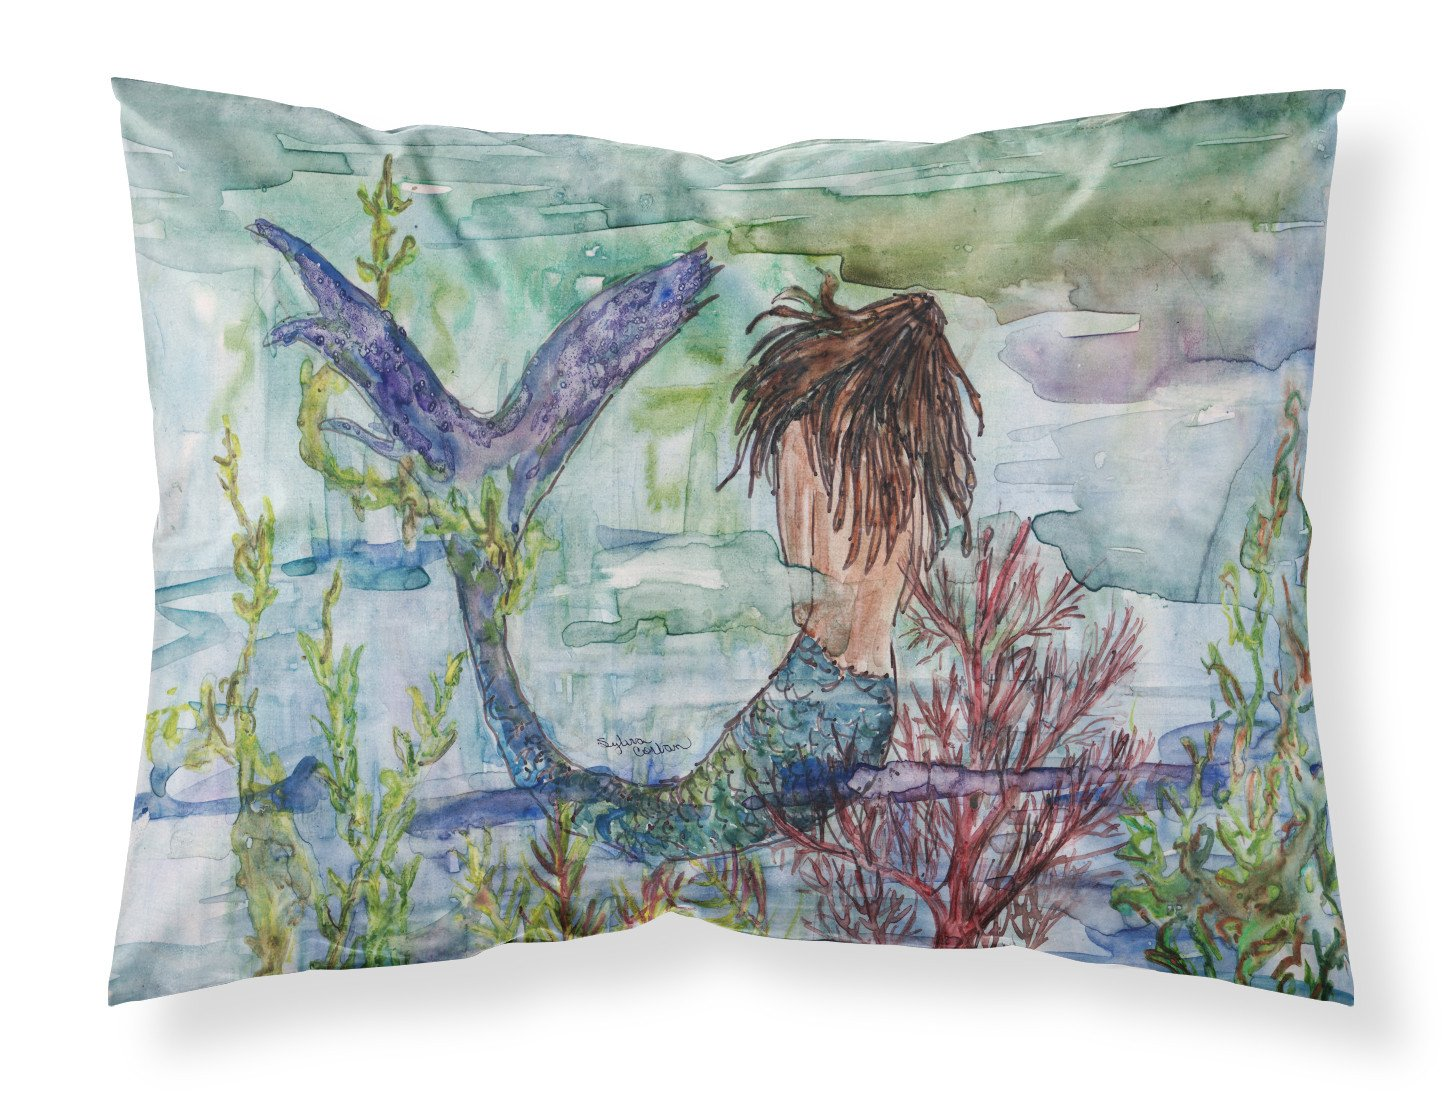 Buy this Brunette Mermaid Coral Fantasy Fabric Standard Pillowcase 8973PILLOWCASE